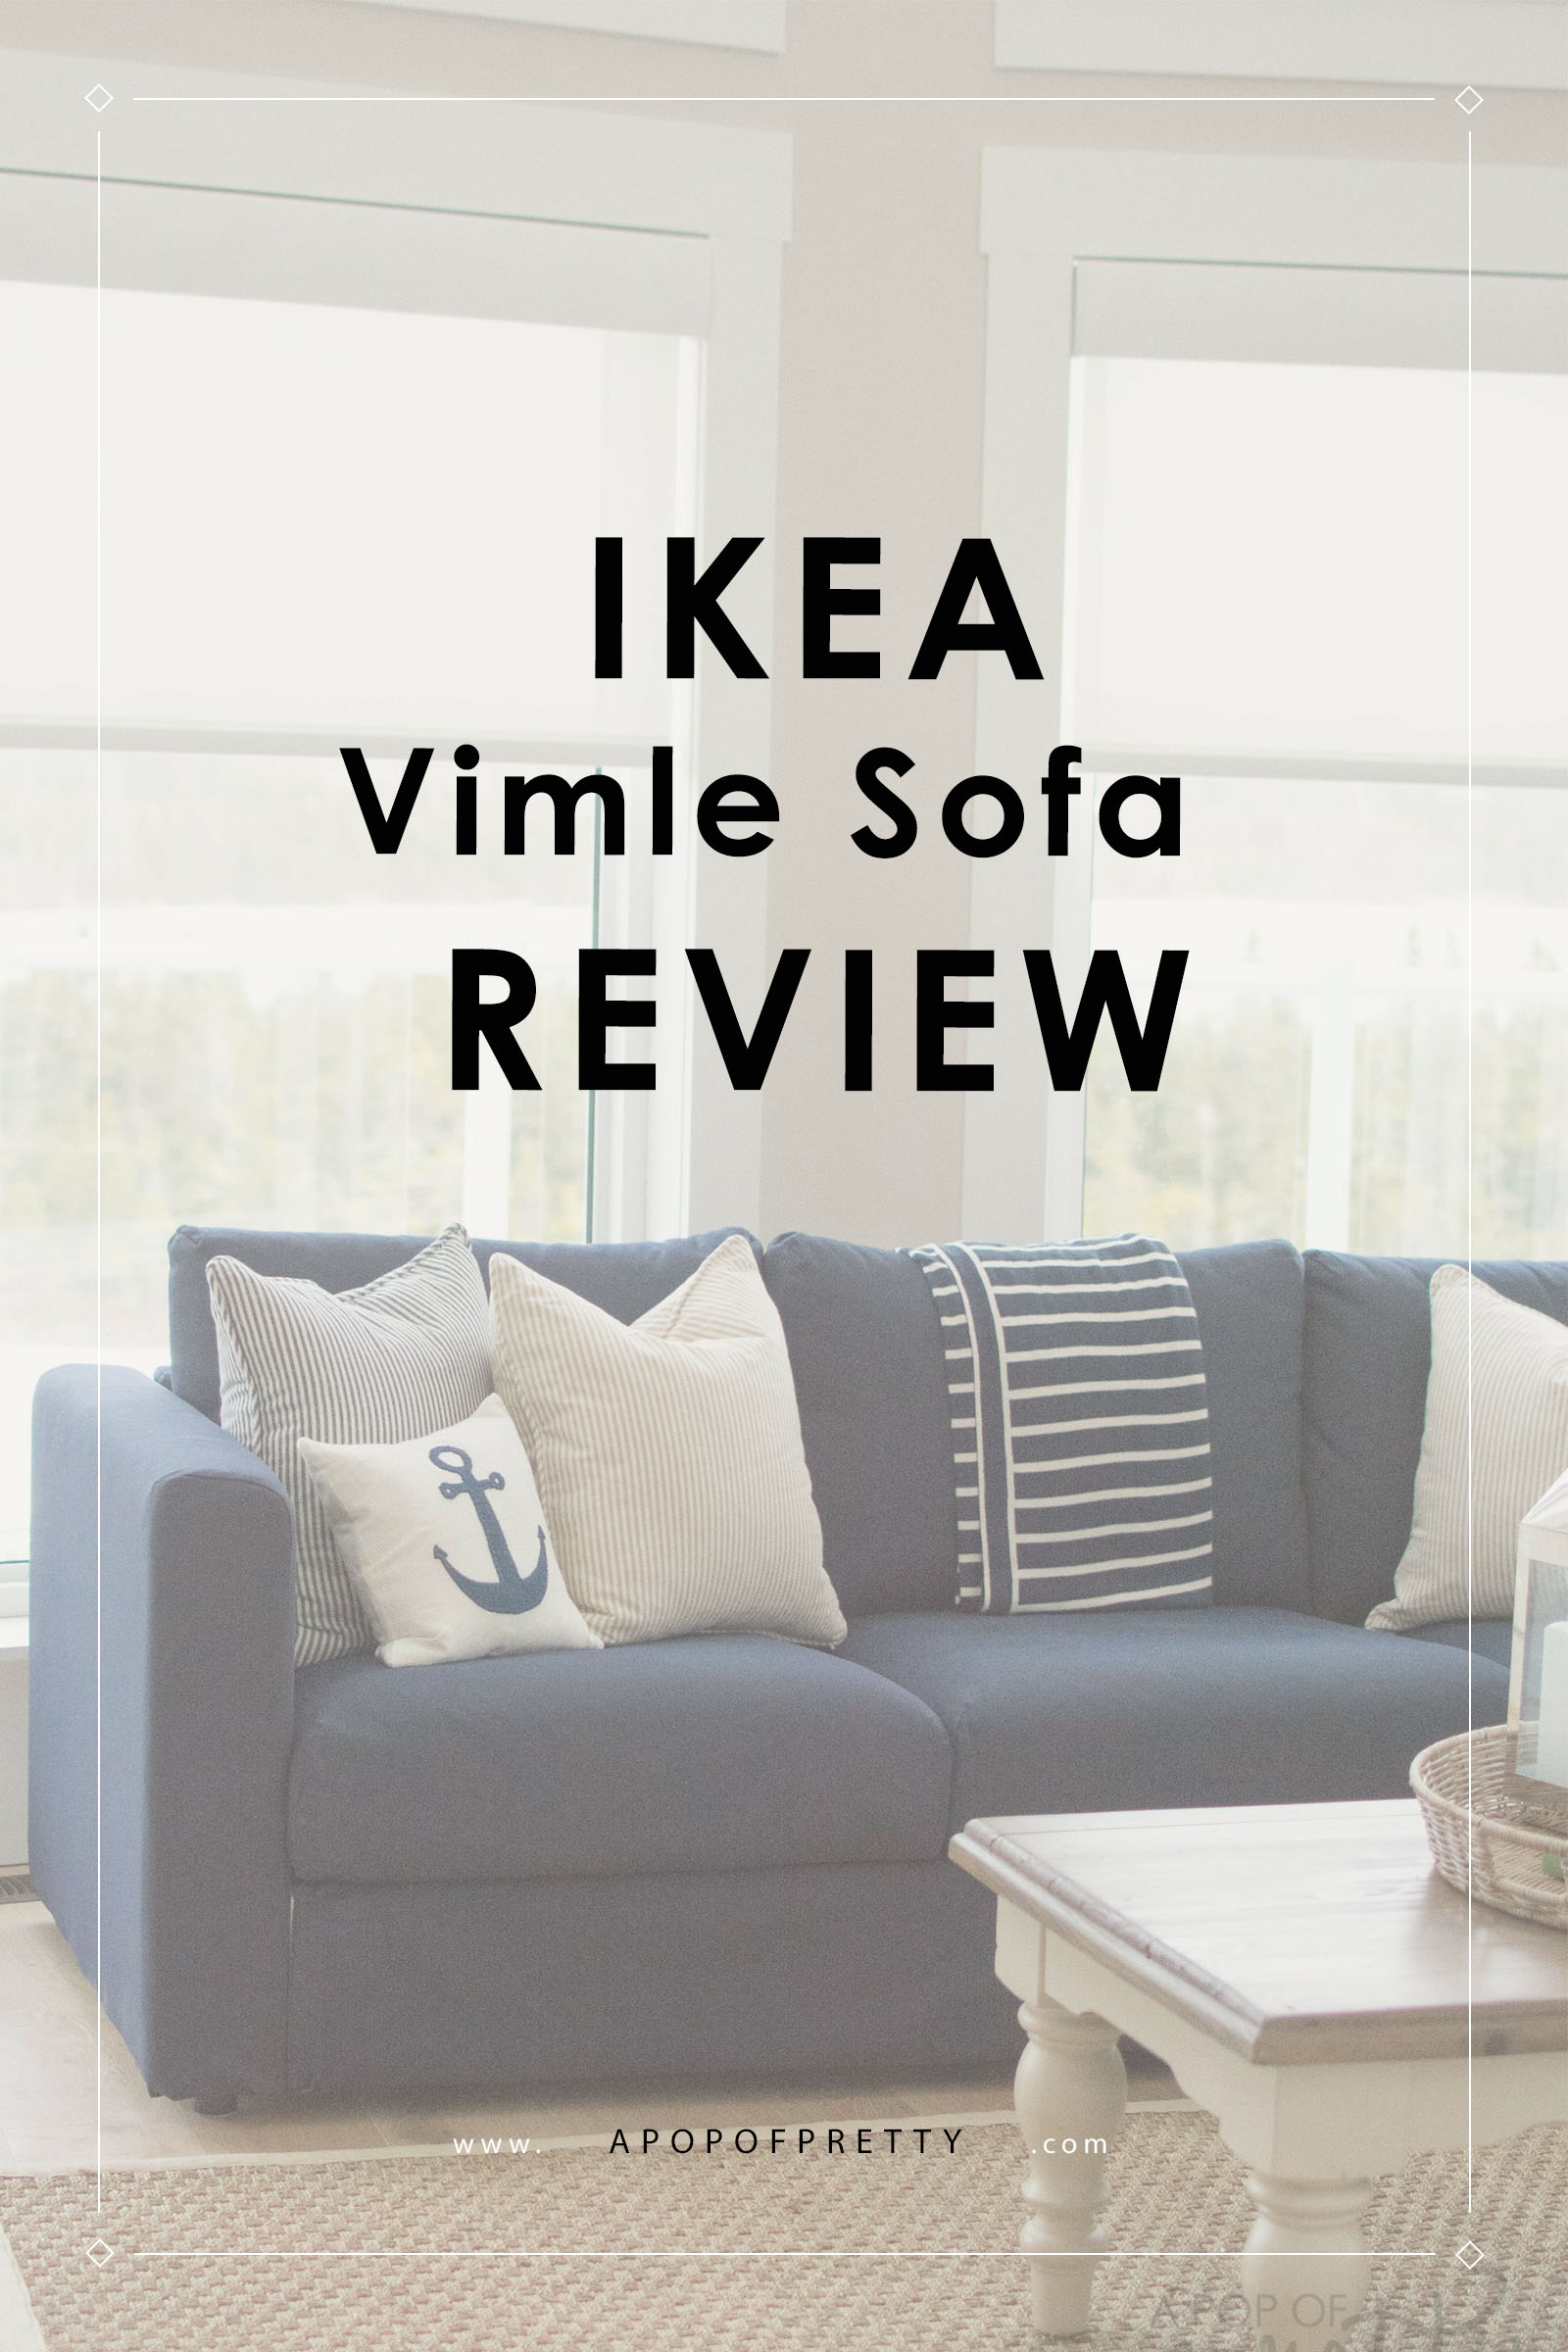 Couch Ikea Our Ikea Vimle Sofa Initial Review A Pop Of Pretty Blog